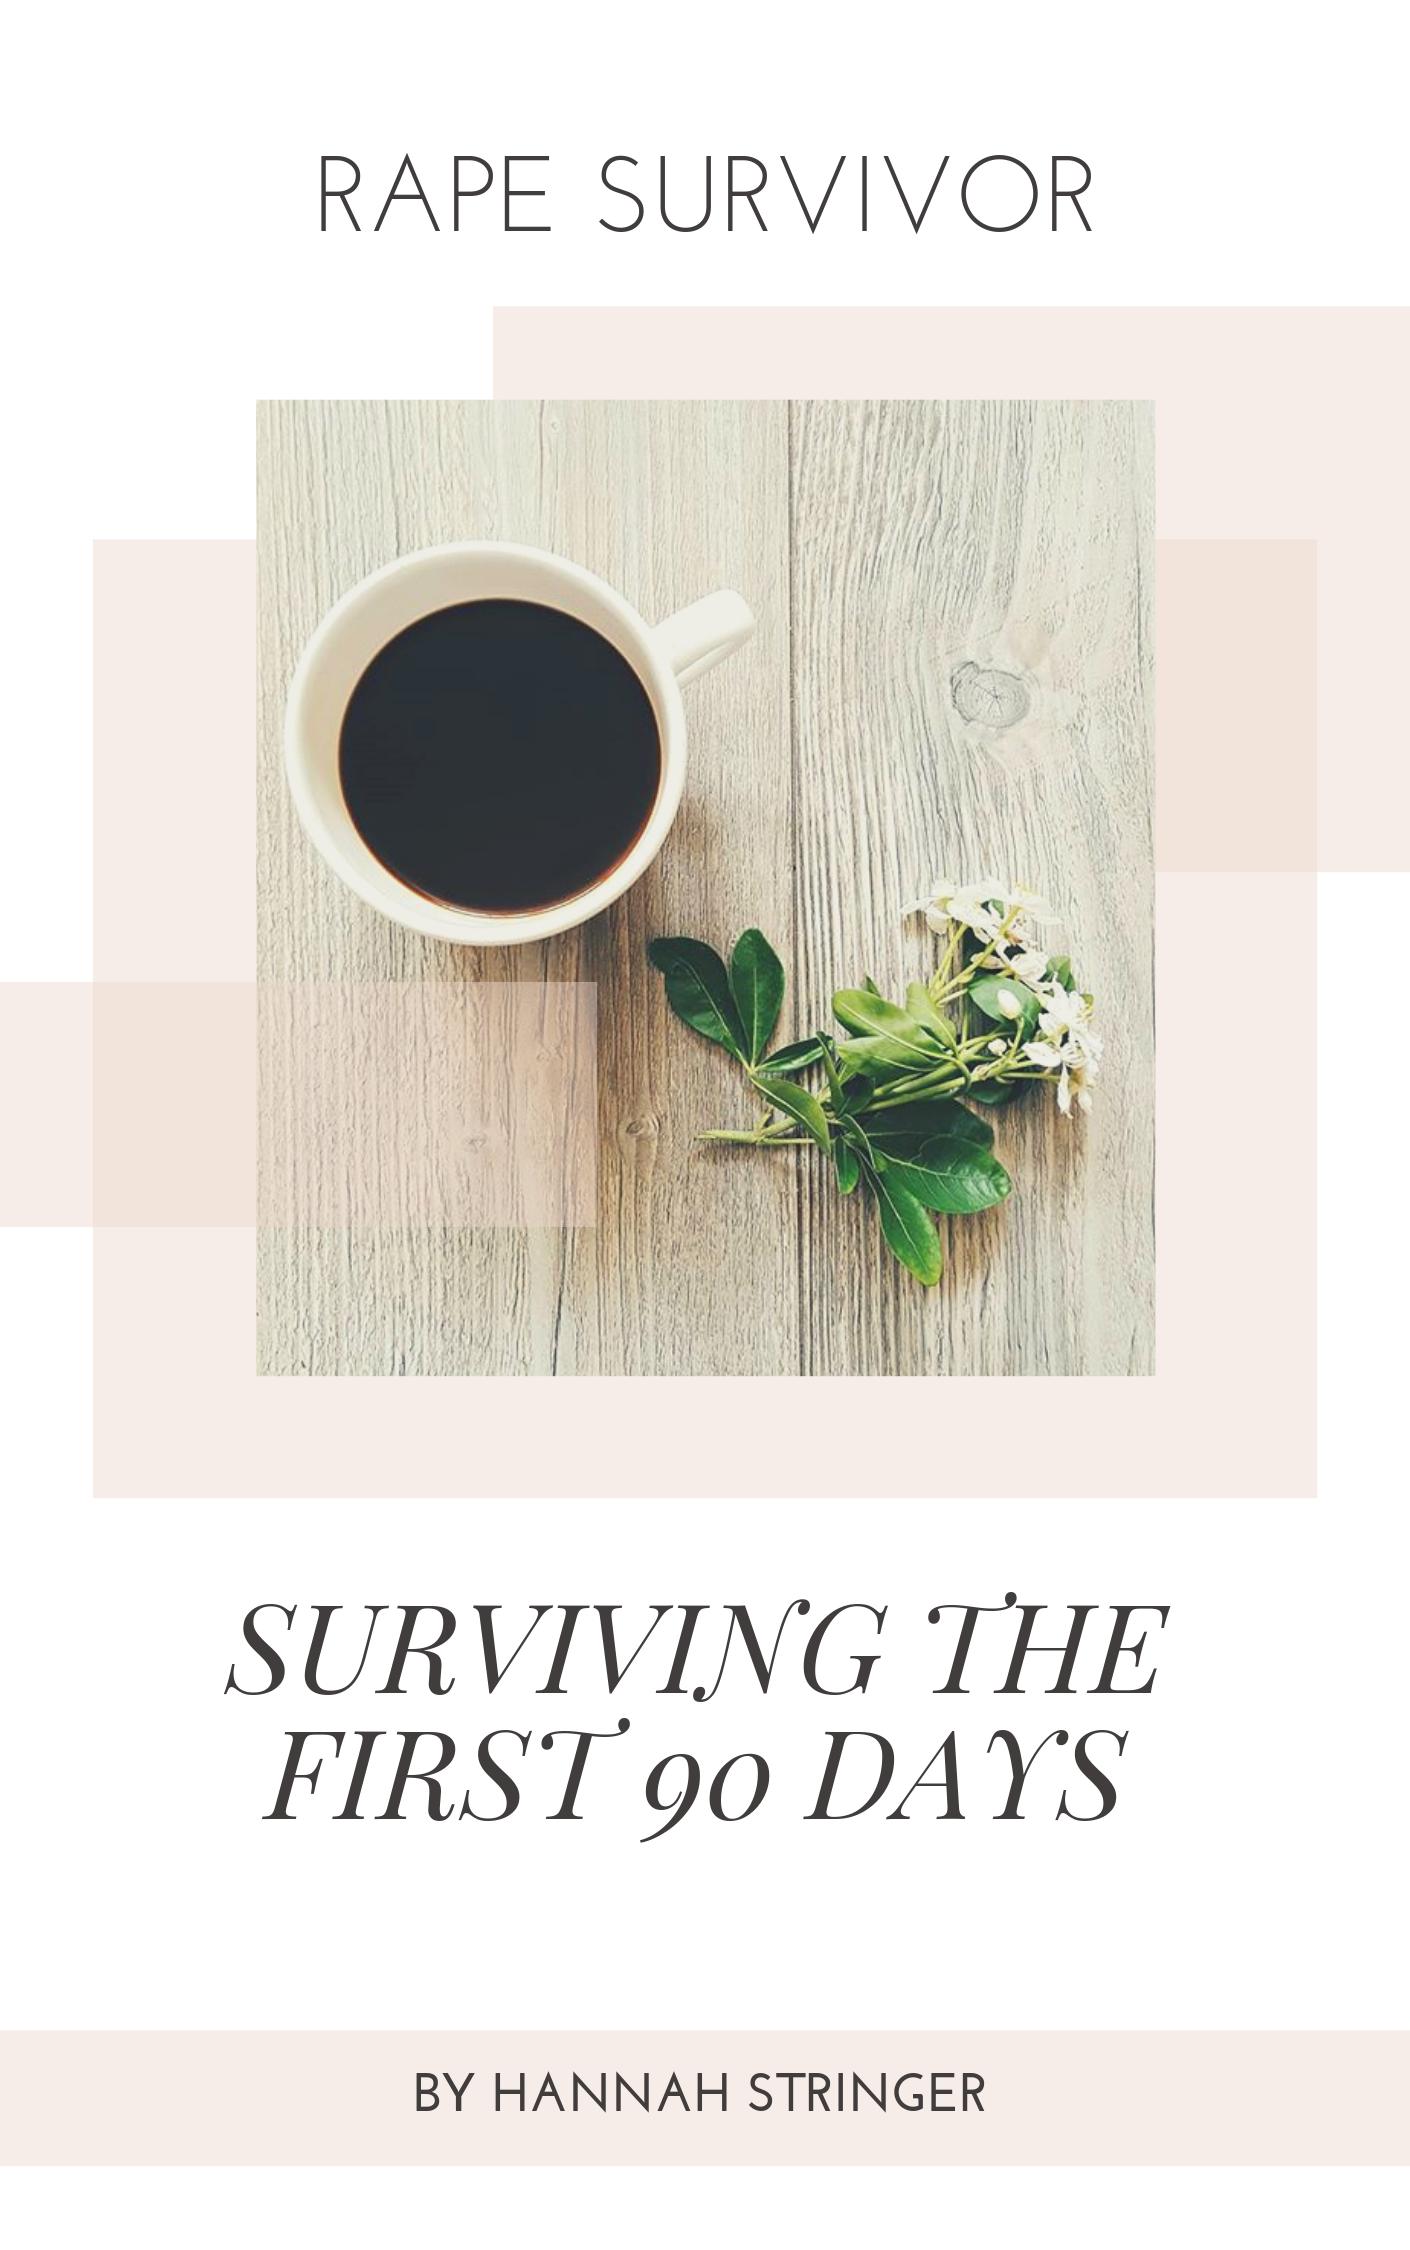 I'm writing an eBook - My eBook (or eGuide) is all about how to survive the first 90 days after you've been raped. It details my own experiences, and contains dozens of fillable digital worksheets for you to complete to help you get your mind straight after one of the worst events a person can go through.If you want to be the first to know when the eBook goes live, then sign up to my mailing list below!